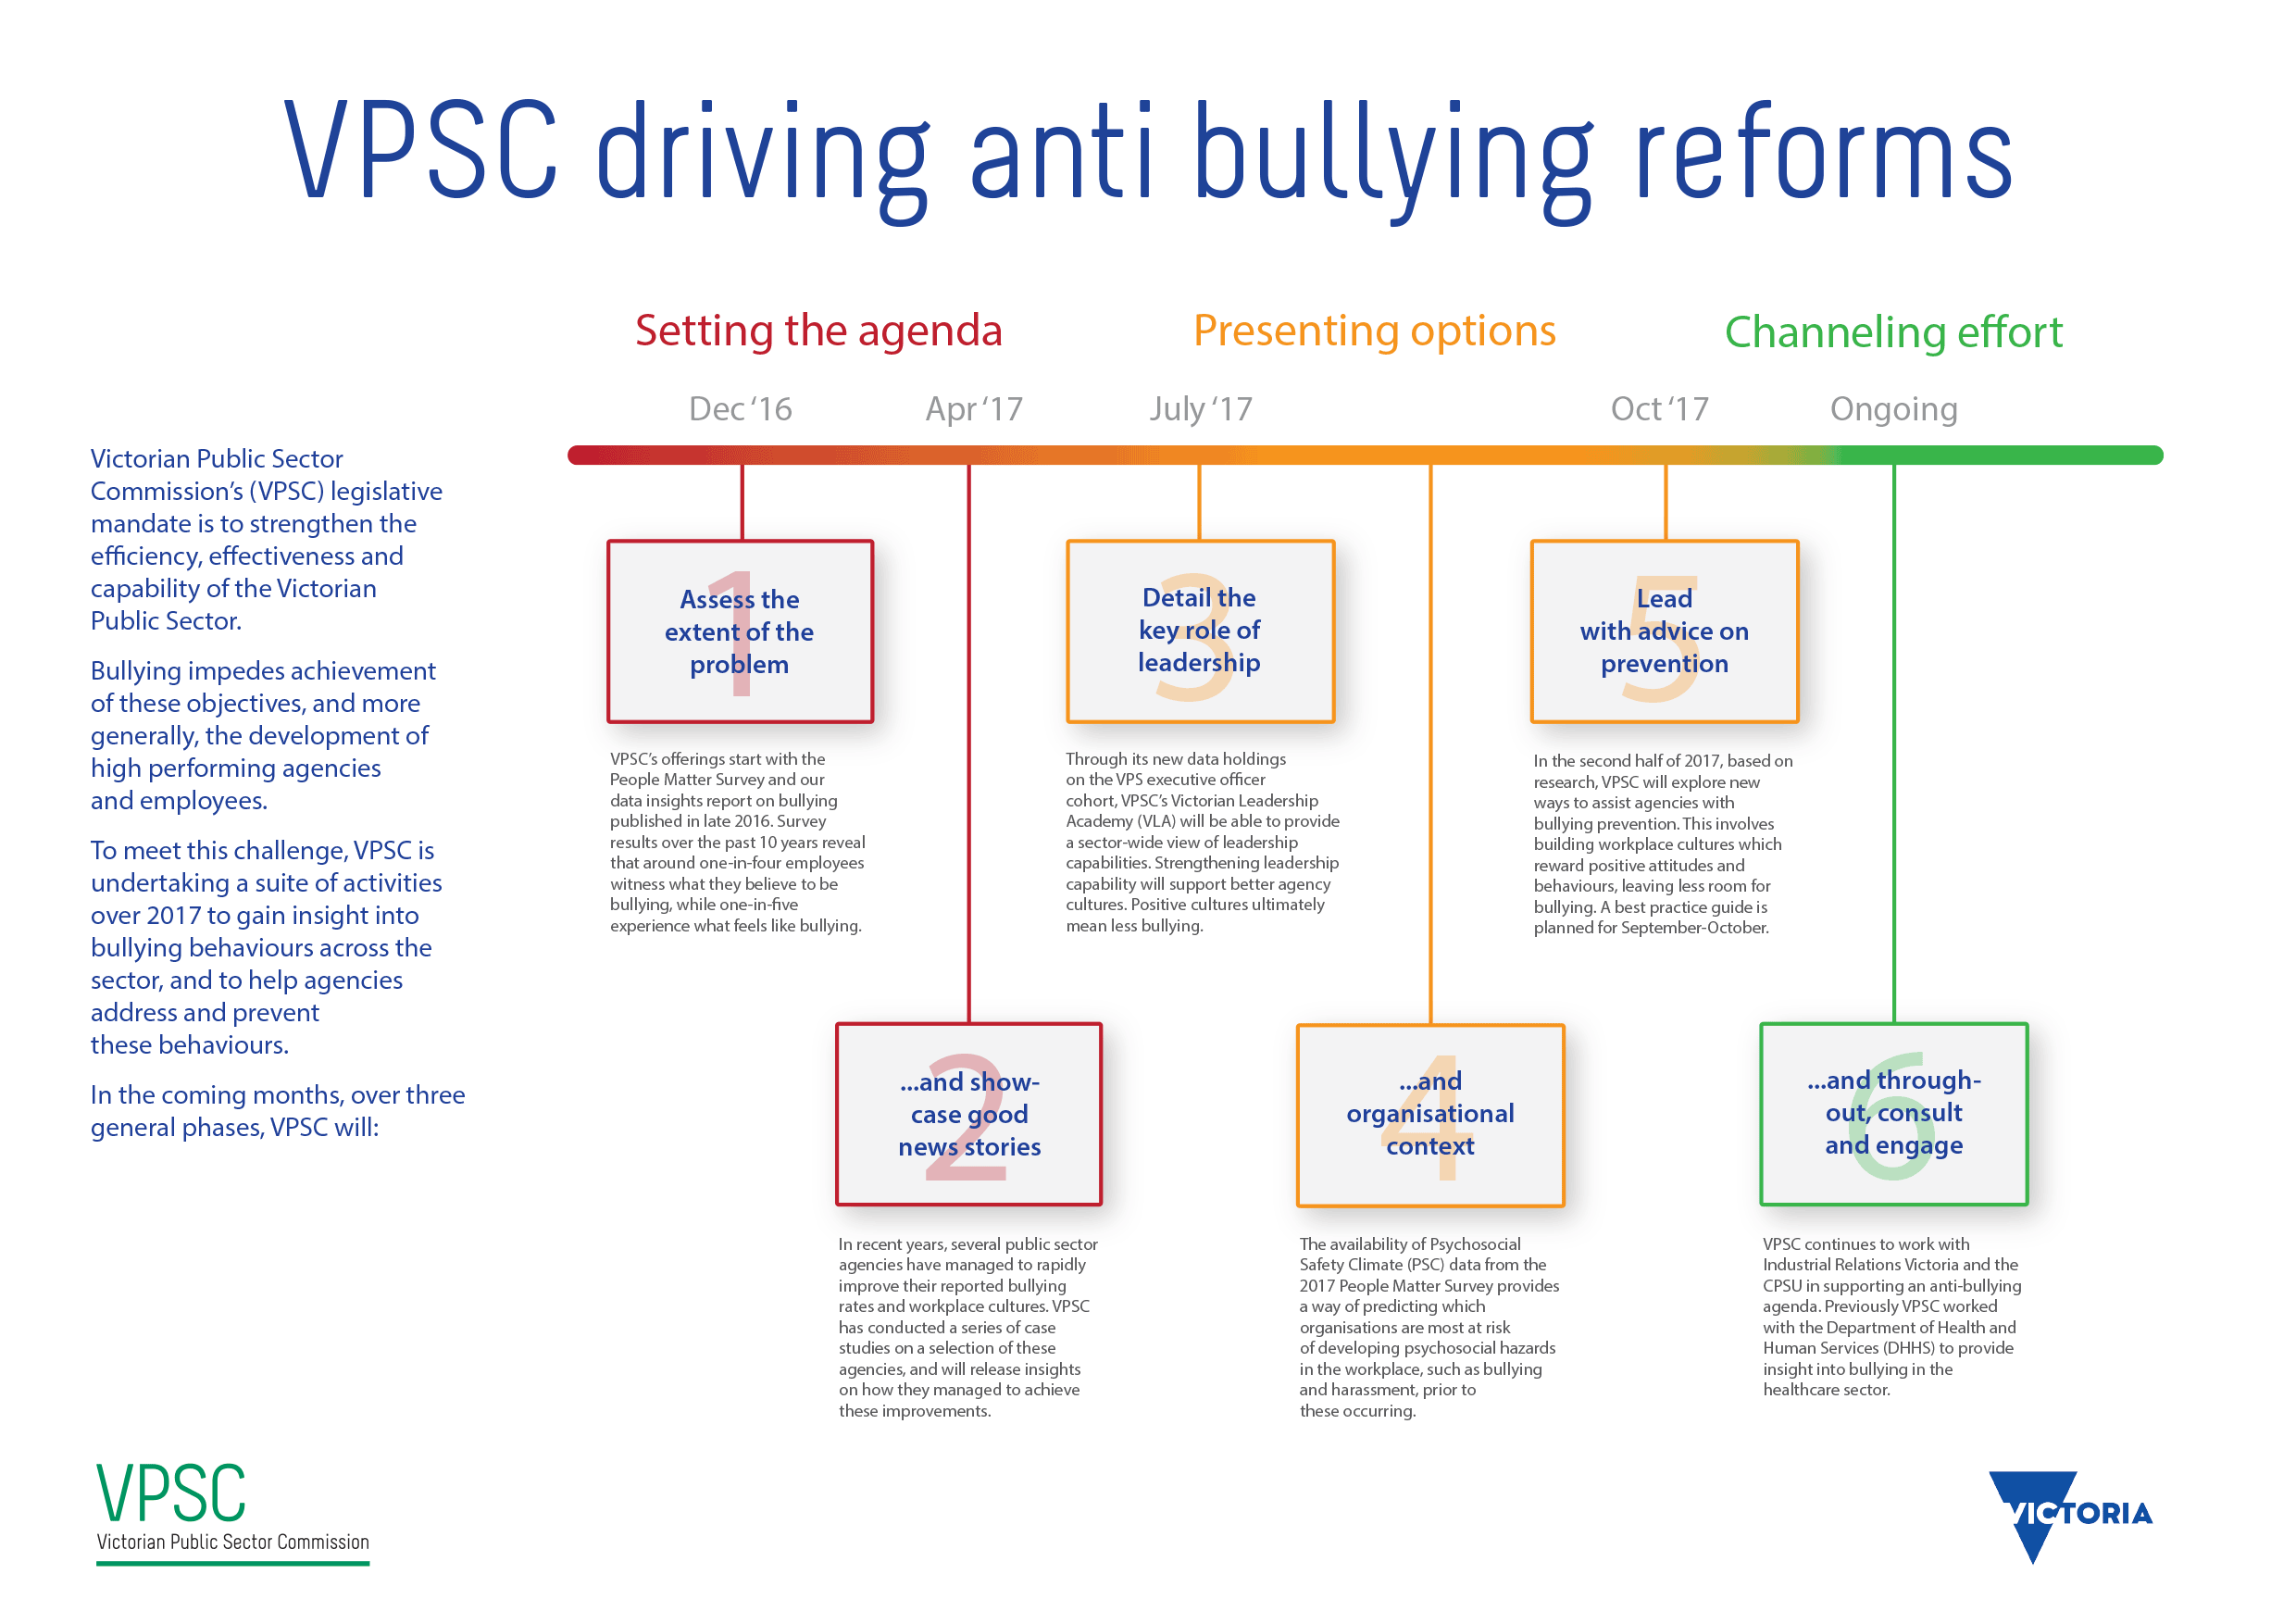 http://vpsc.vic.gov.au/workforce-capability-leadership-and-management/driving-anti-bullying-reforms/driving-anti-bullying-reforms/